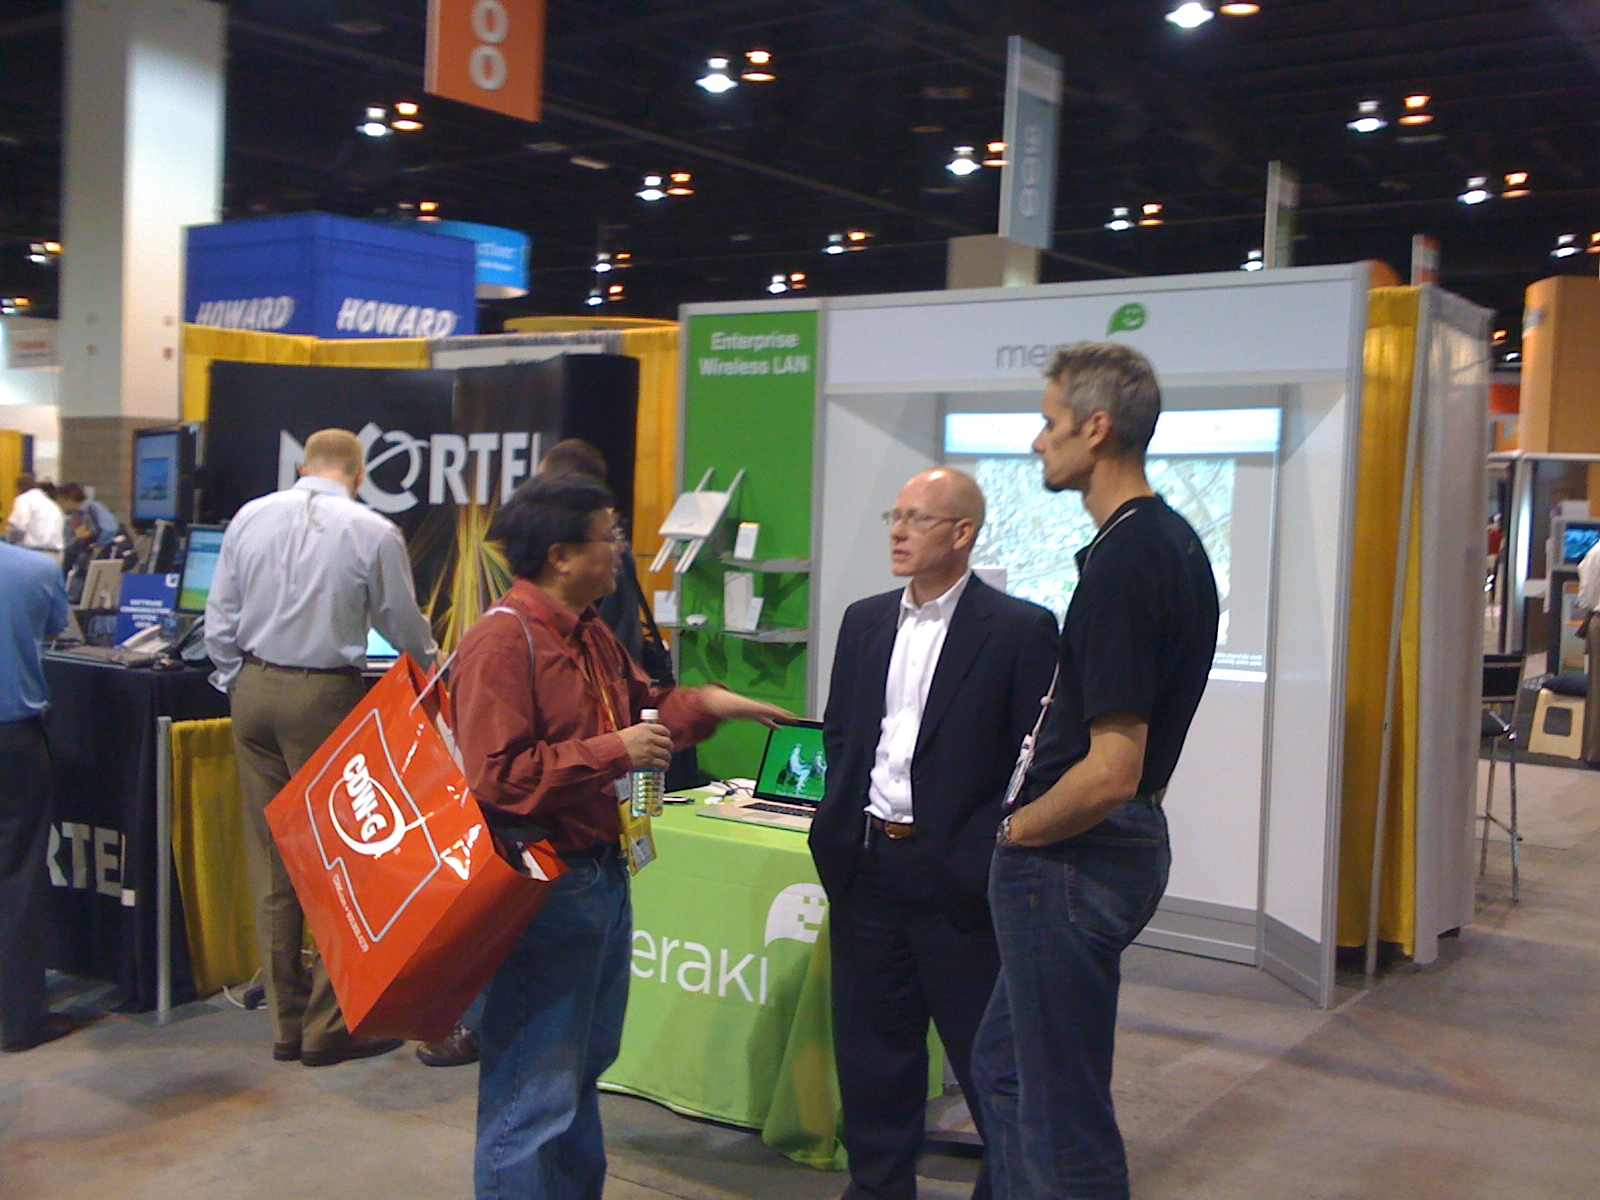 Mort and Hans giving Dashboard demos and chatting with booth visitors